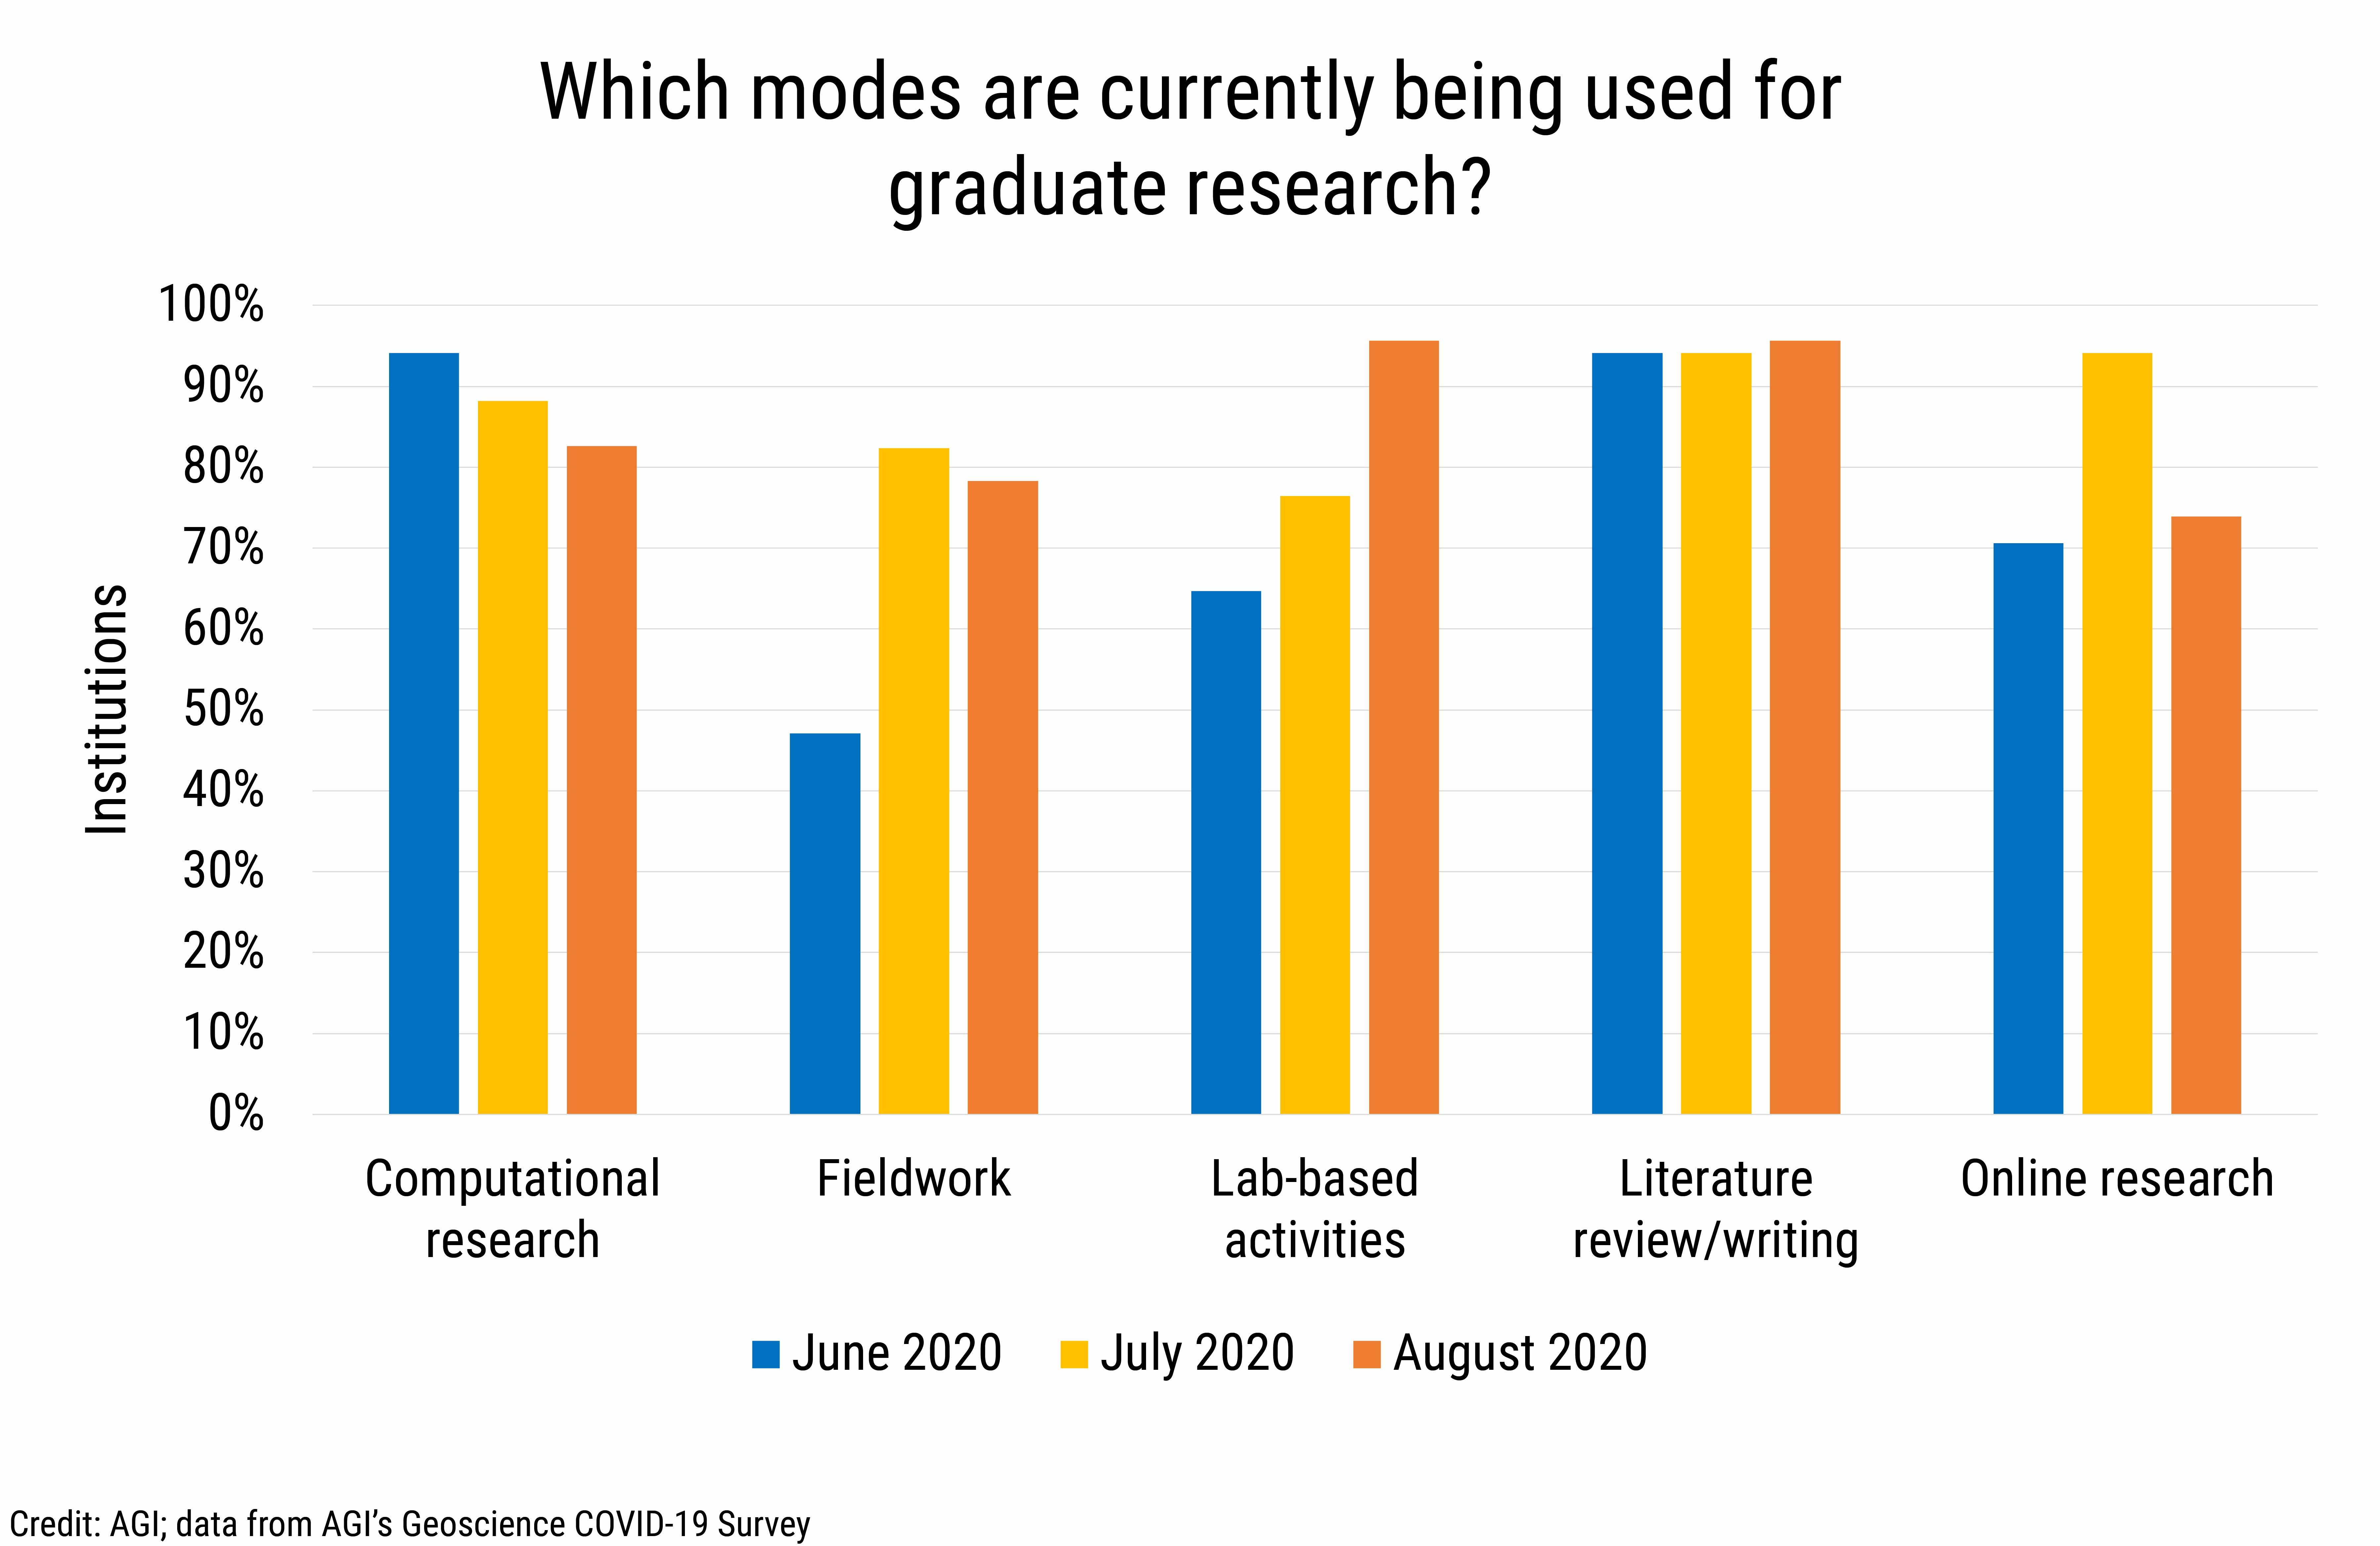 DB2020-021: chart 03: Graduate Research Modes (Credit: AGI; data from AGI's Geoscience COVID-19 Survey)